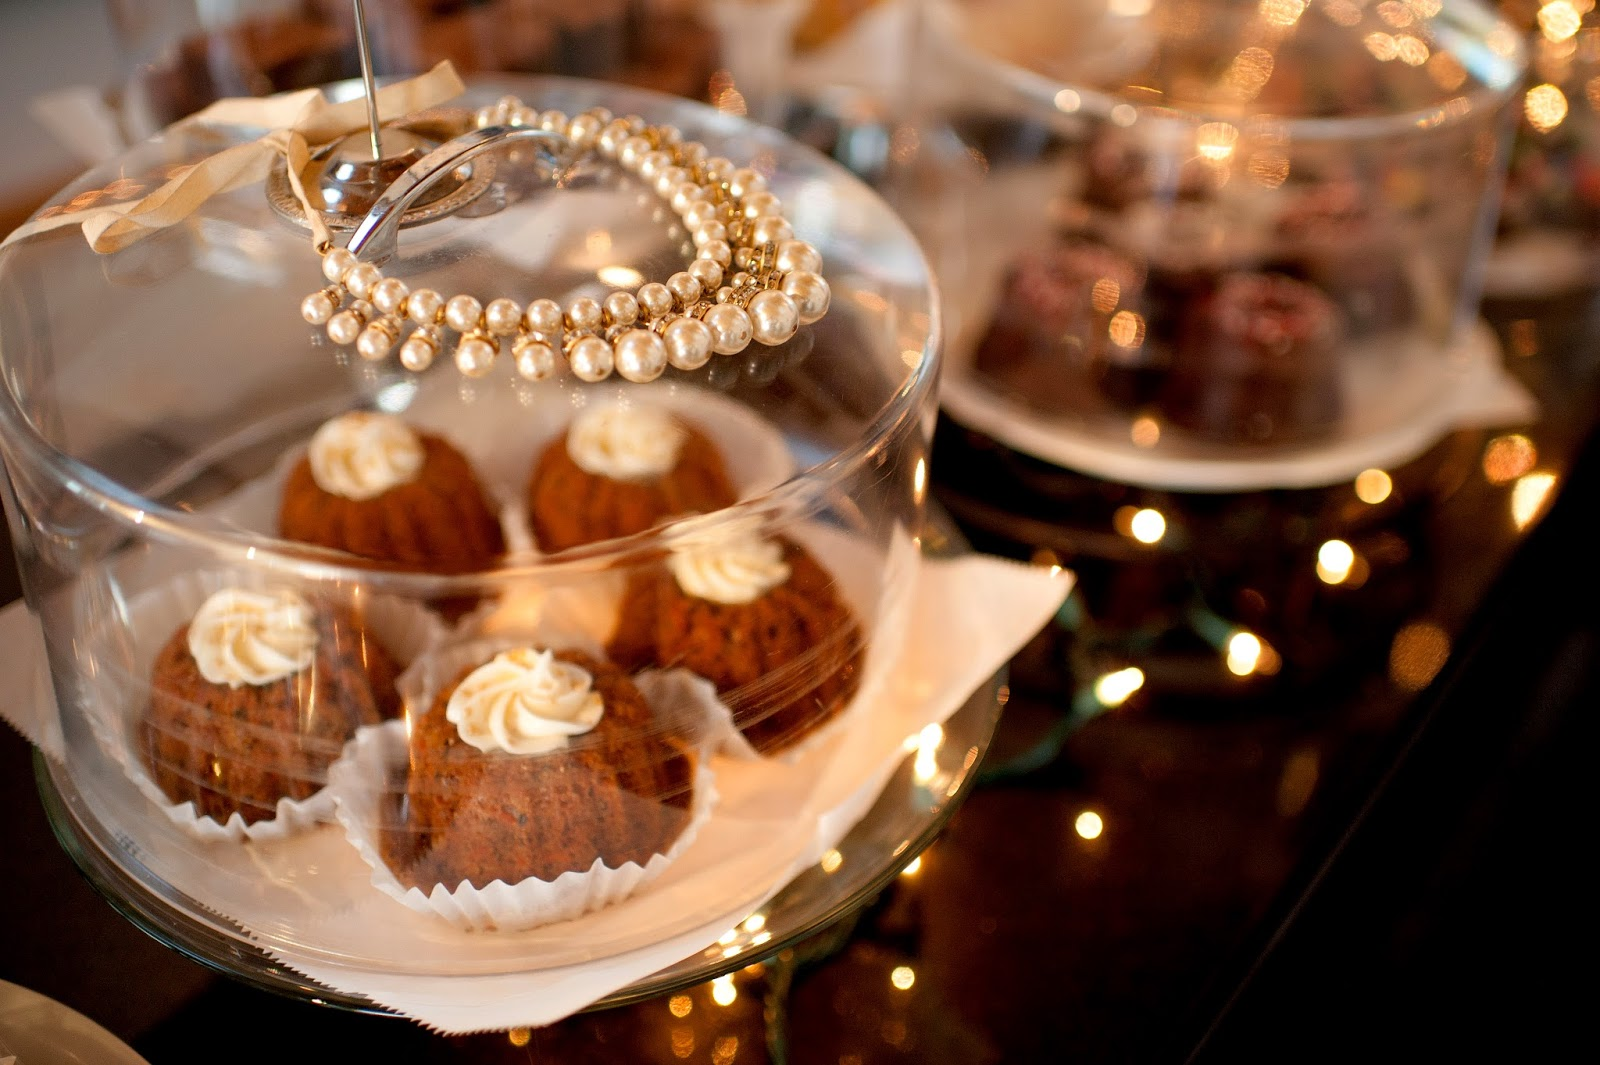 pearl-necklace-gift-pretty-staged-shot-at-big-bundts-bakery-and-more